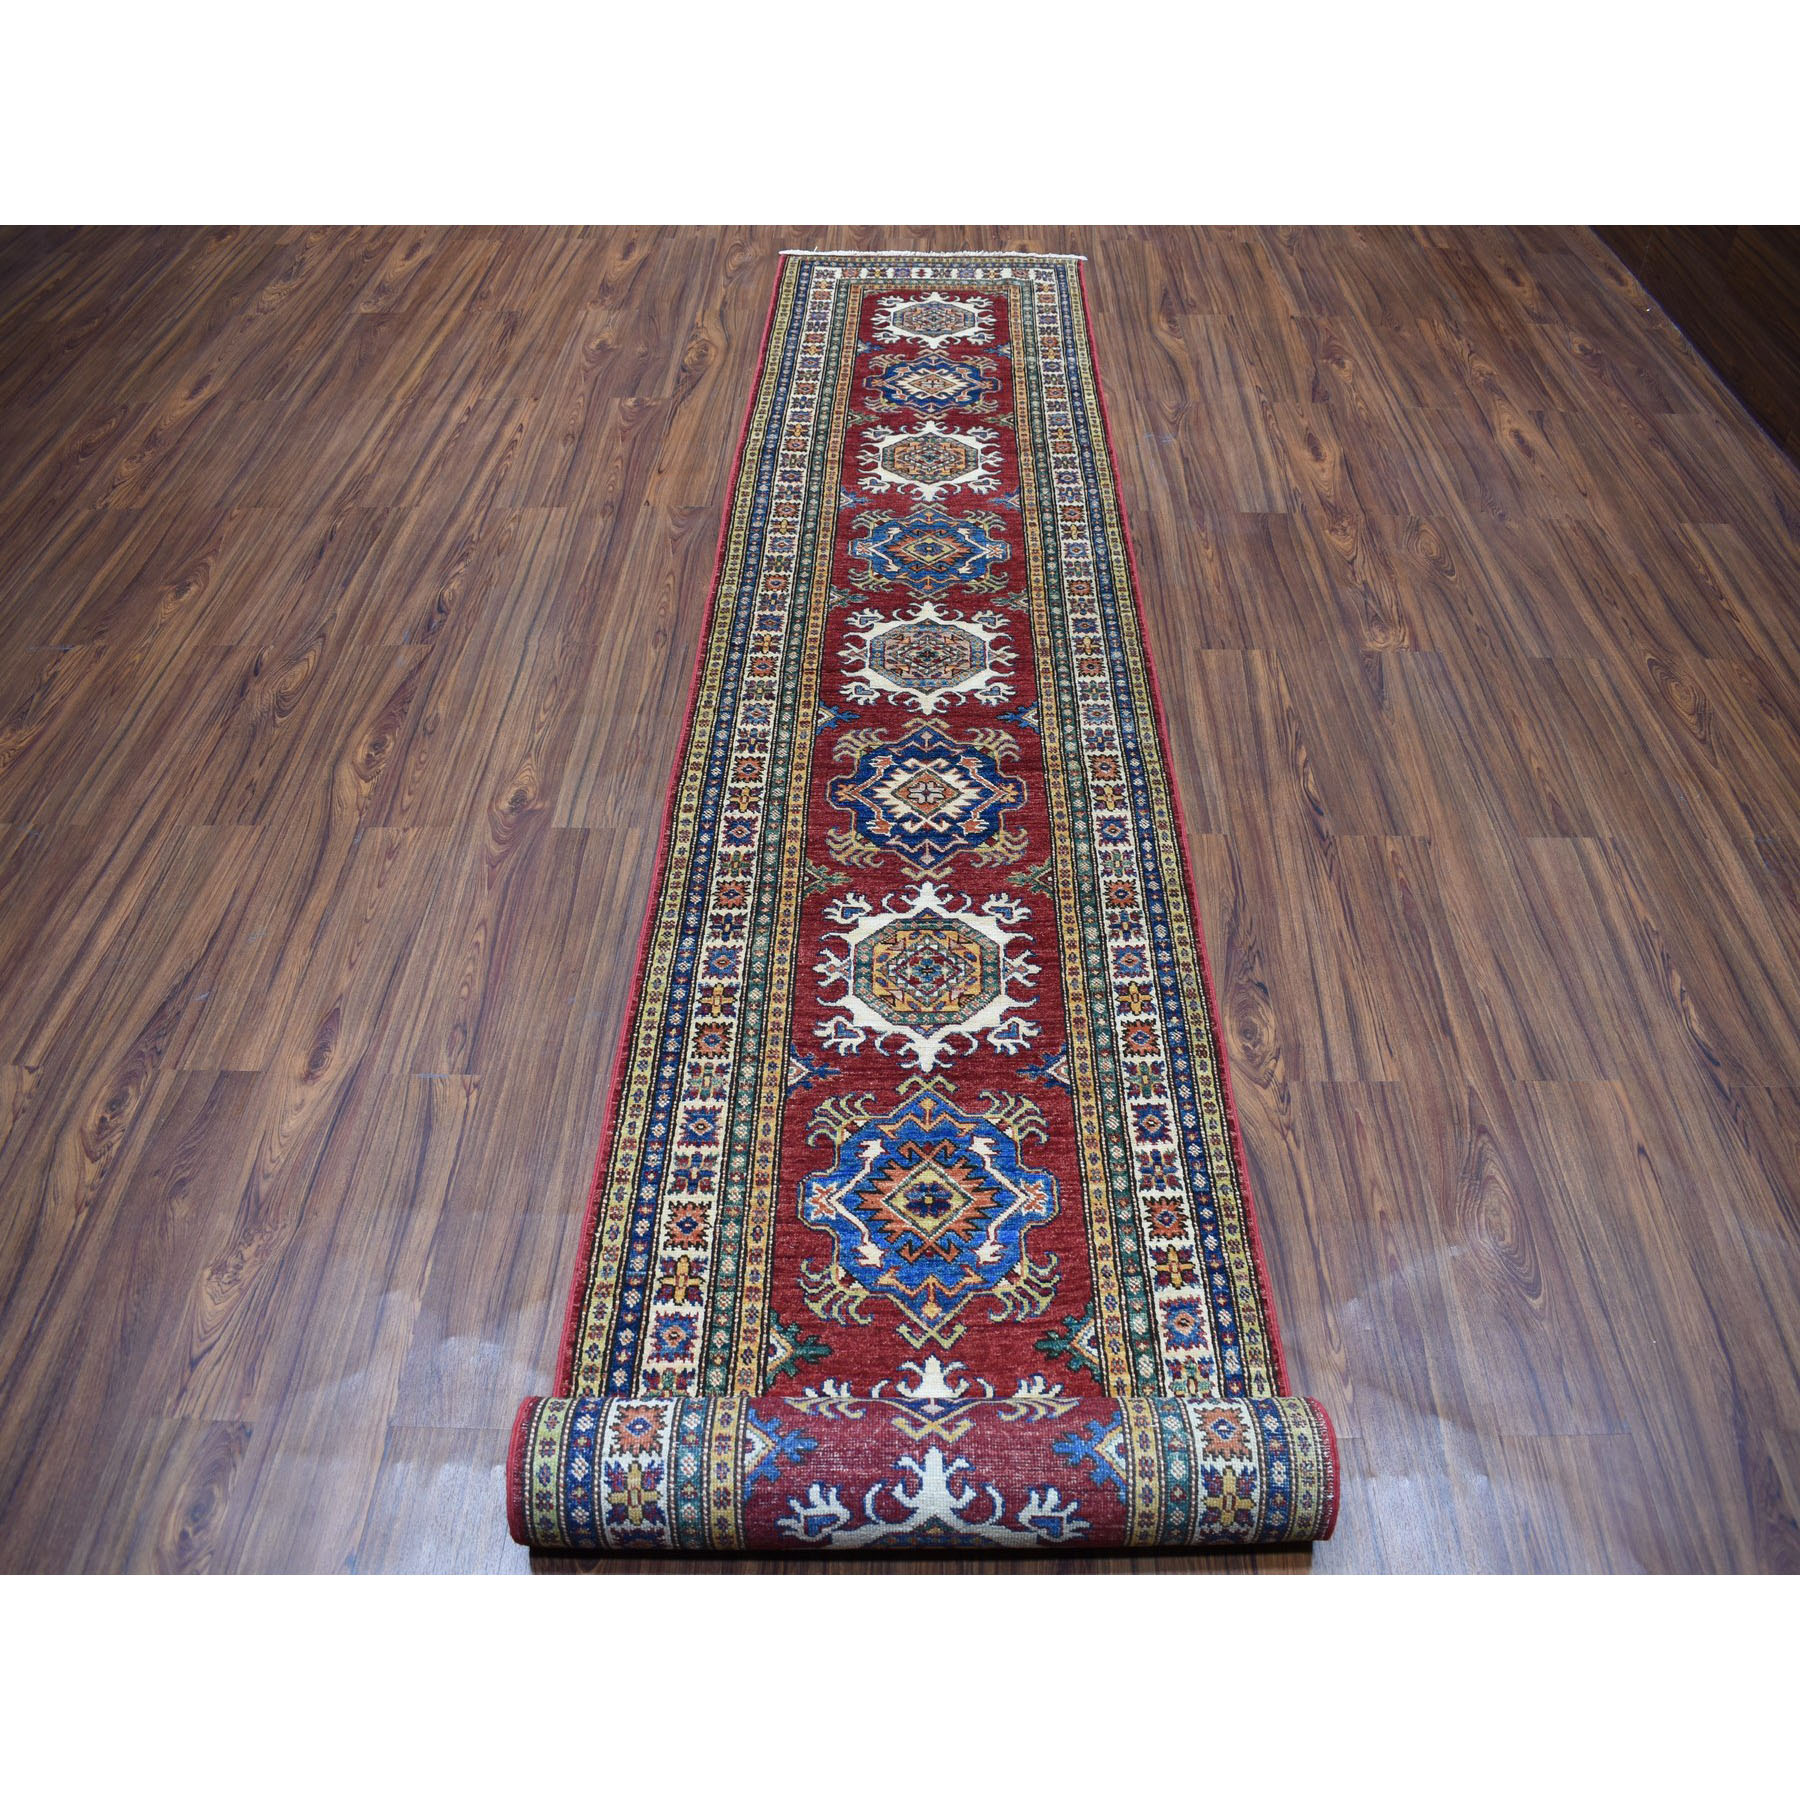 "2'8""x19'5"" Red Super Kazak Pure Wool Geometric Design XL Runner Hand-Knotted Oriental Rug"